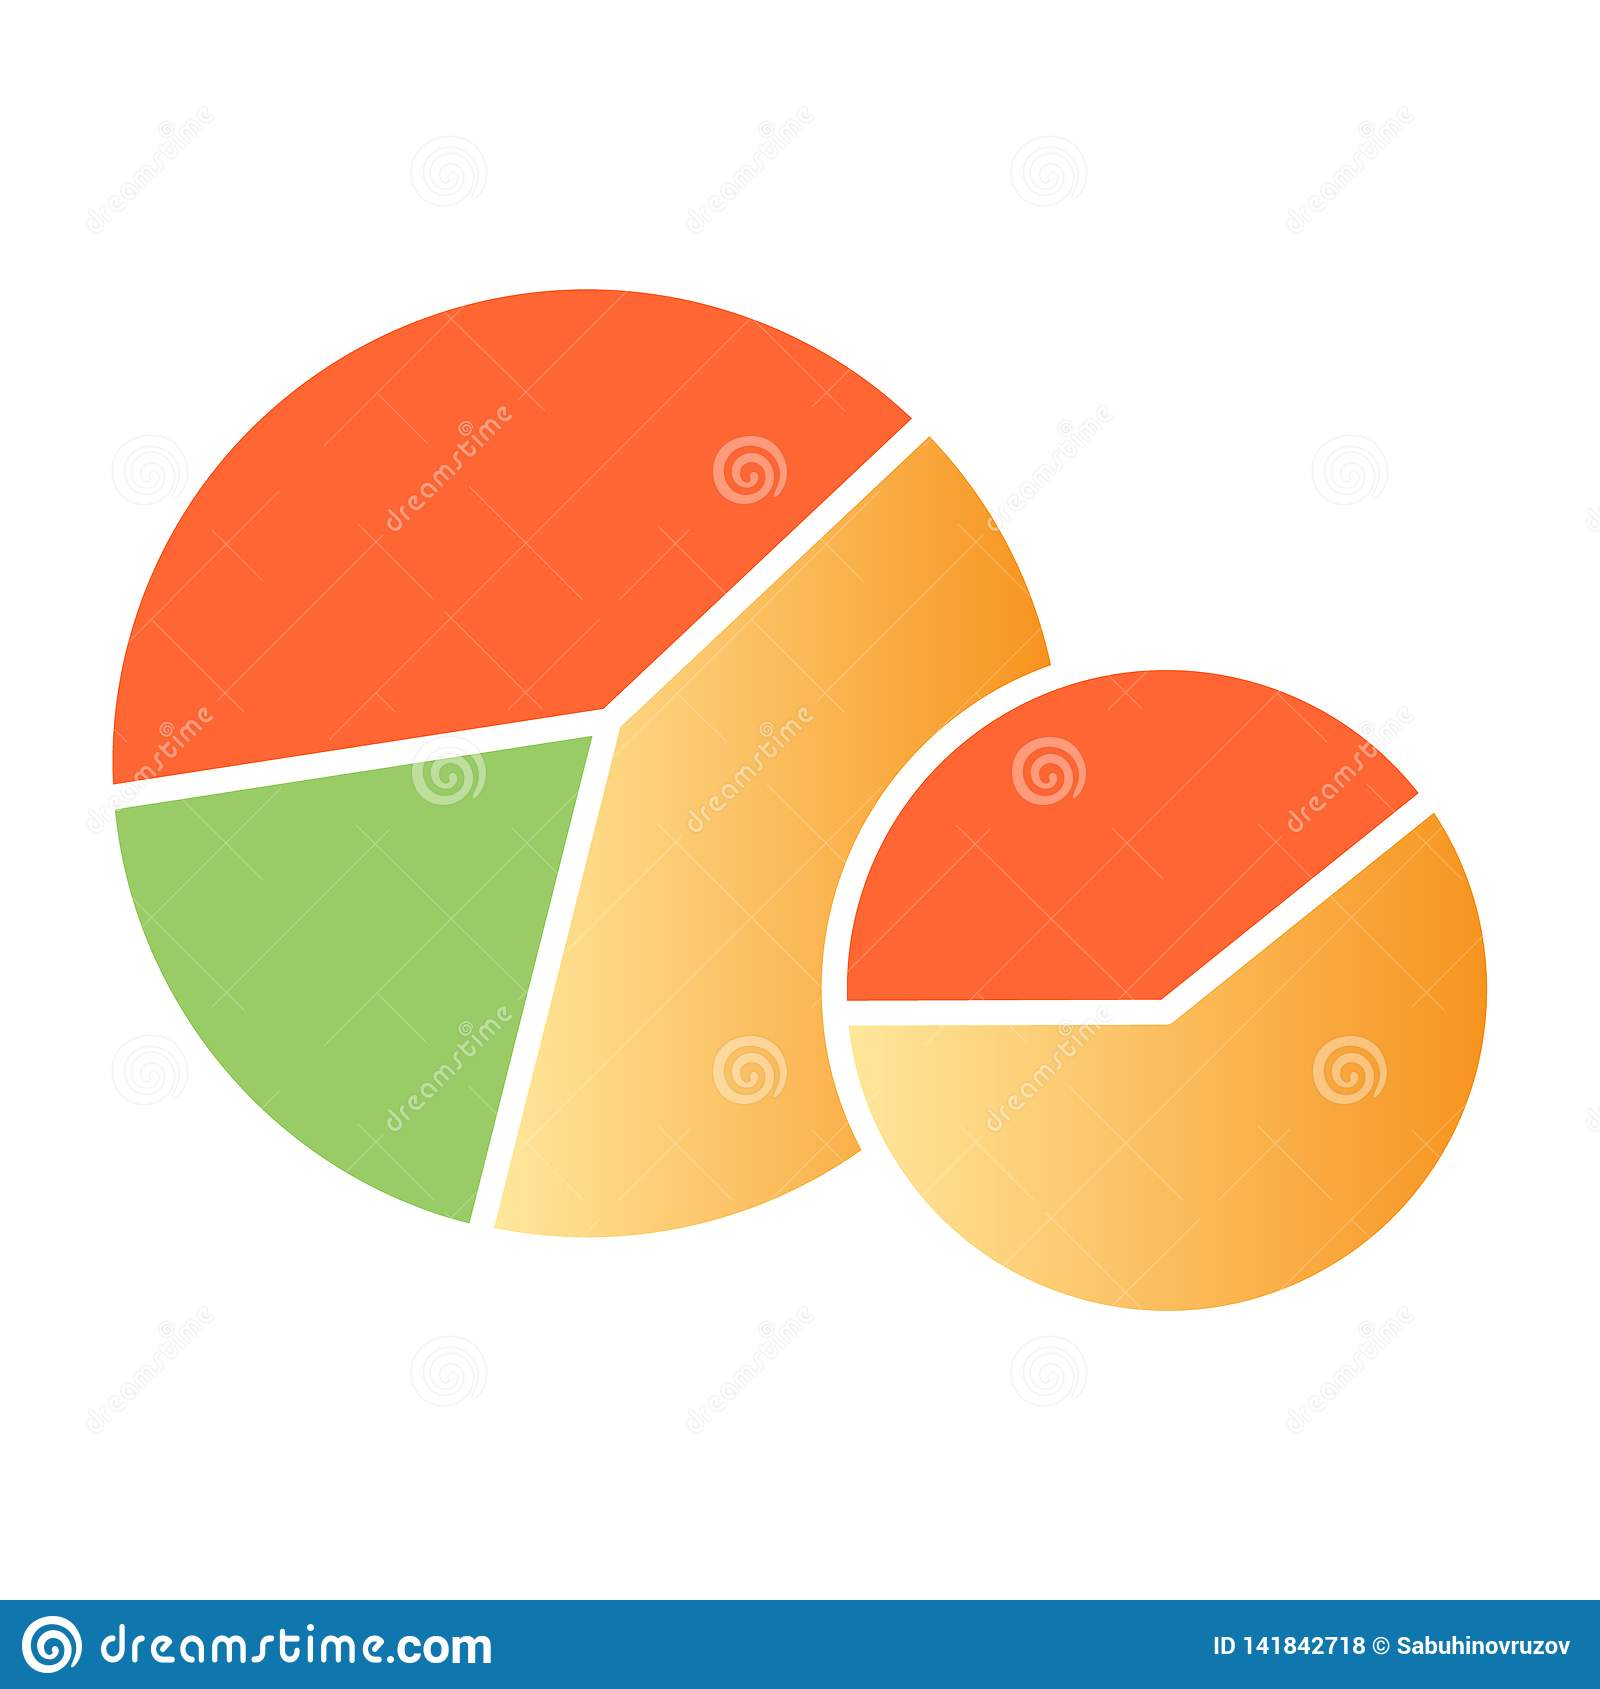 Diagram flat icon. Circle graph color icons in trendy flat style. Pie chart gradient style design, designed for web and